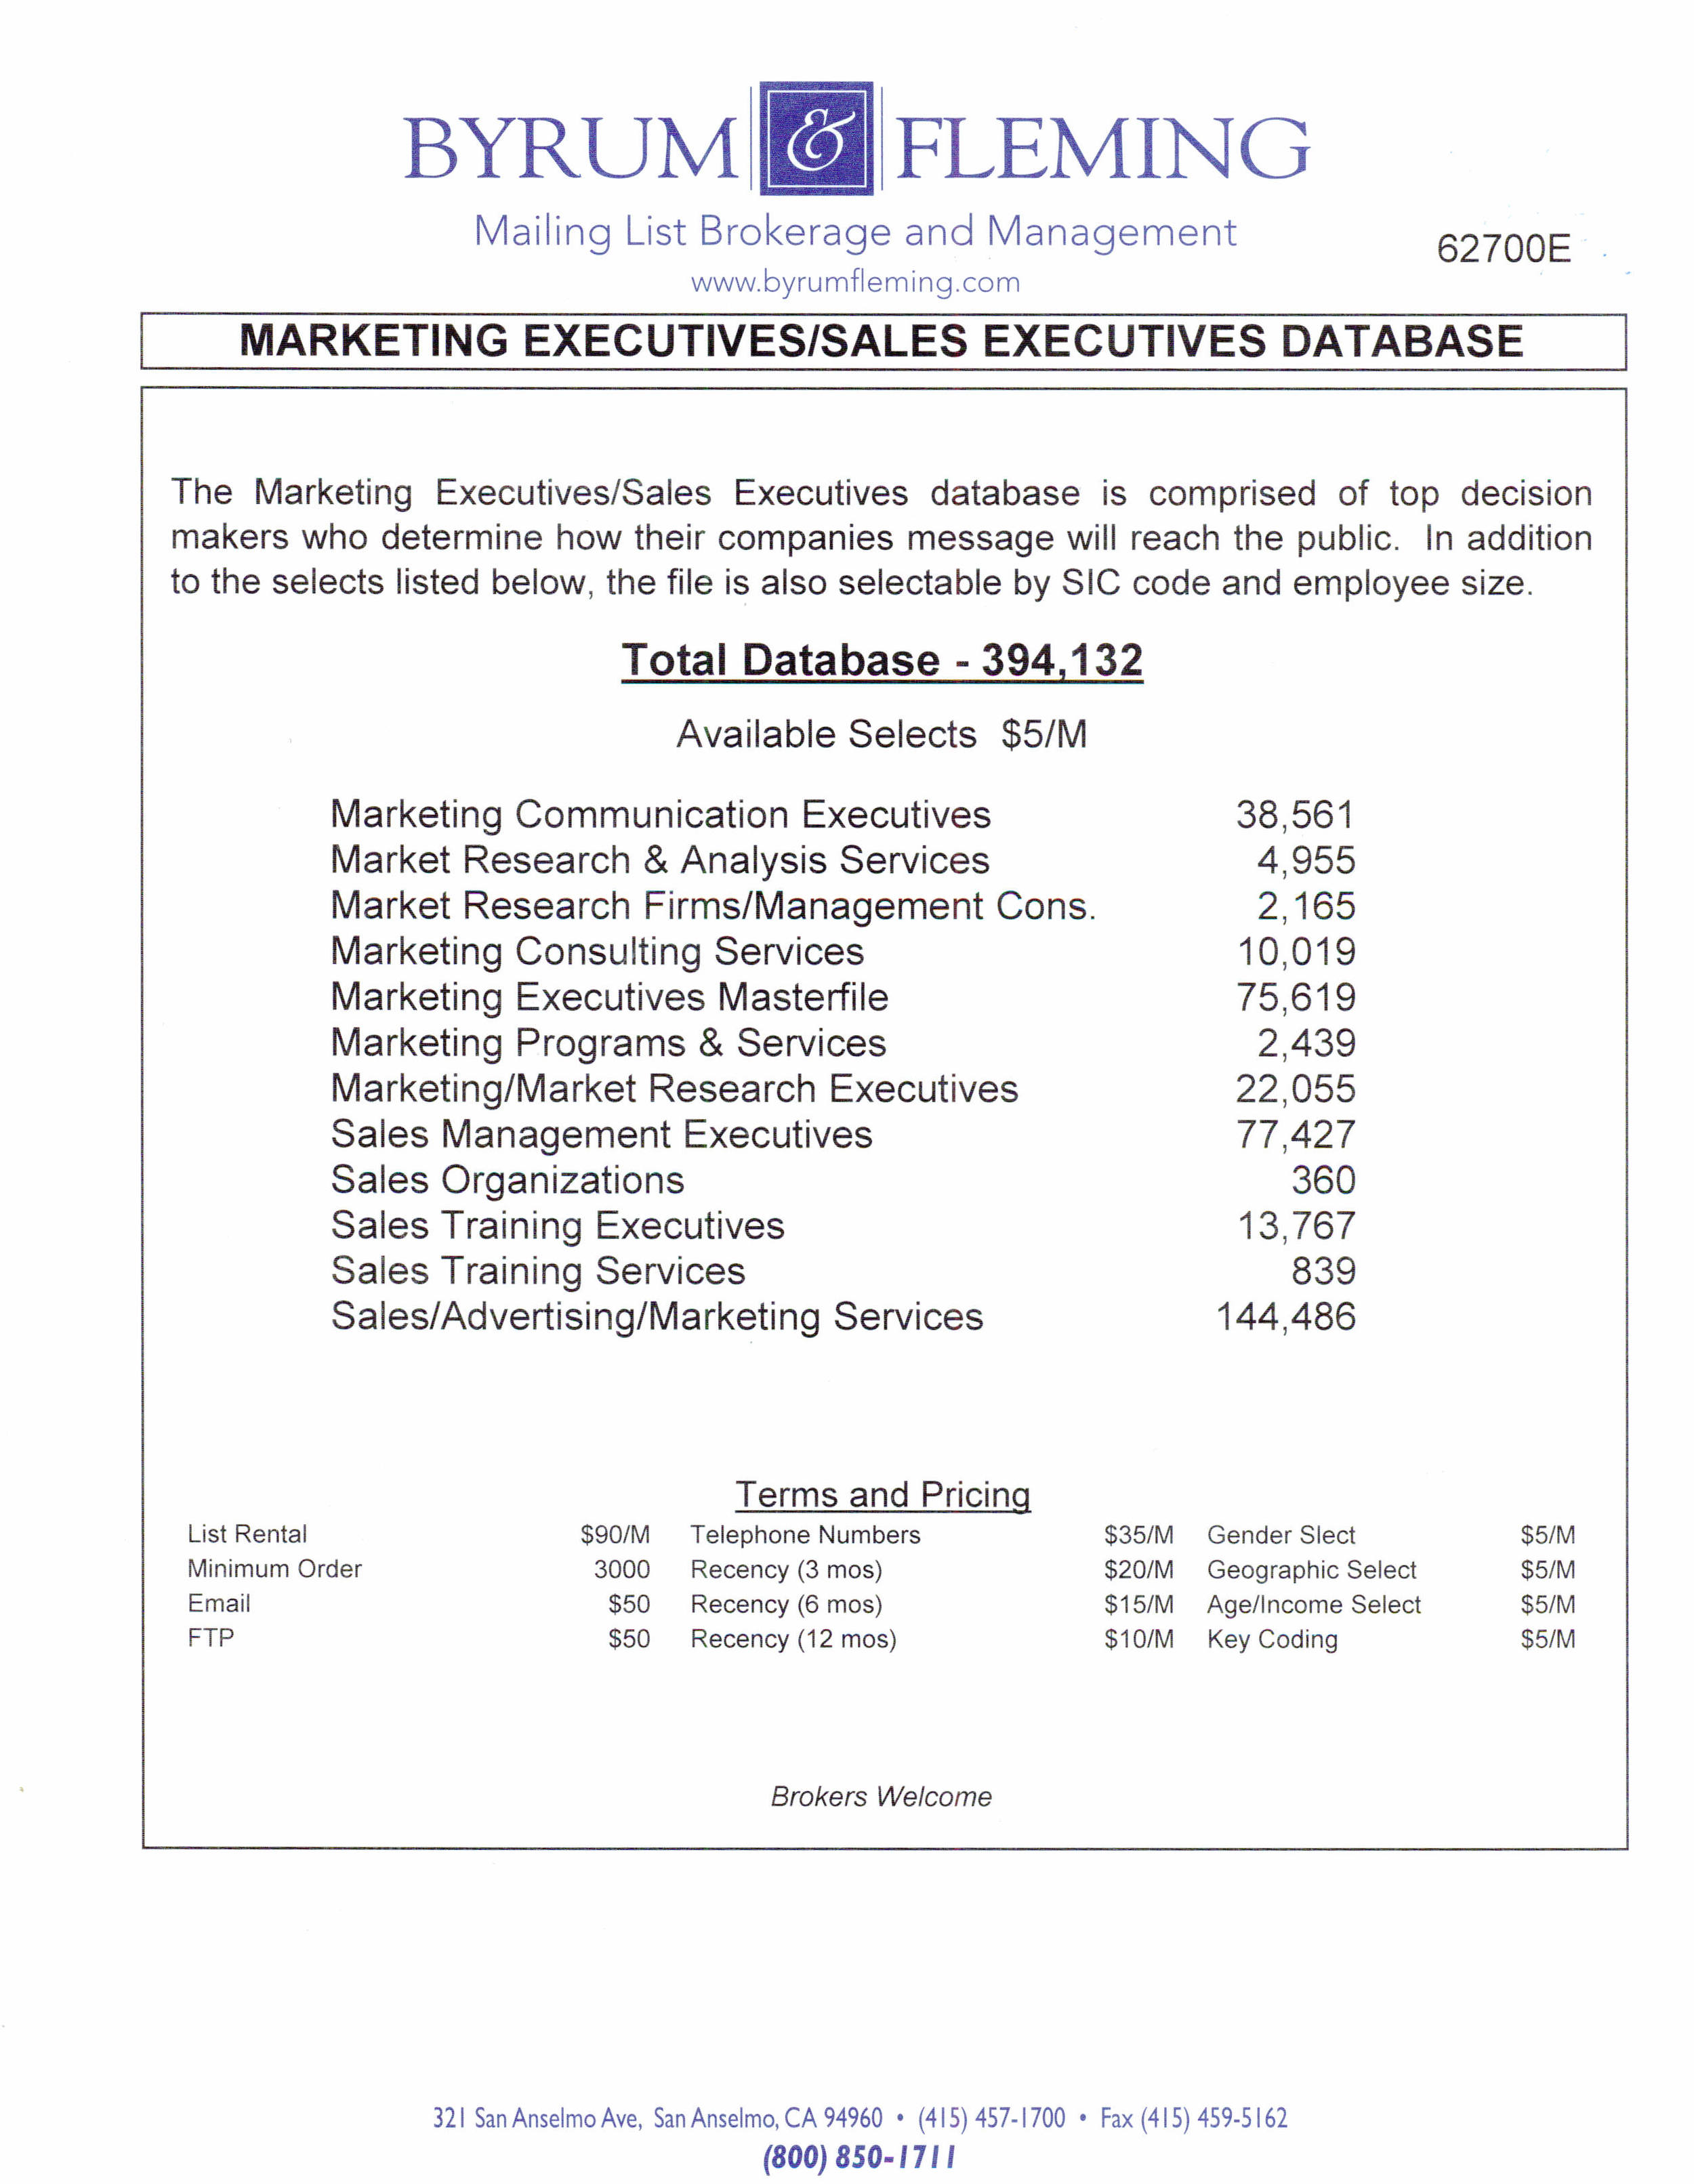 CommunicationResearch & Analysis Services Research Firms/Management Cons. Consulting Services Programs & Services Management Organizations Training Services Advertising